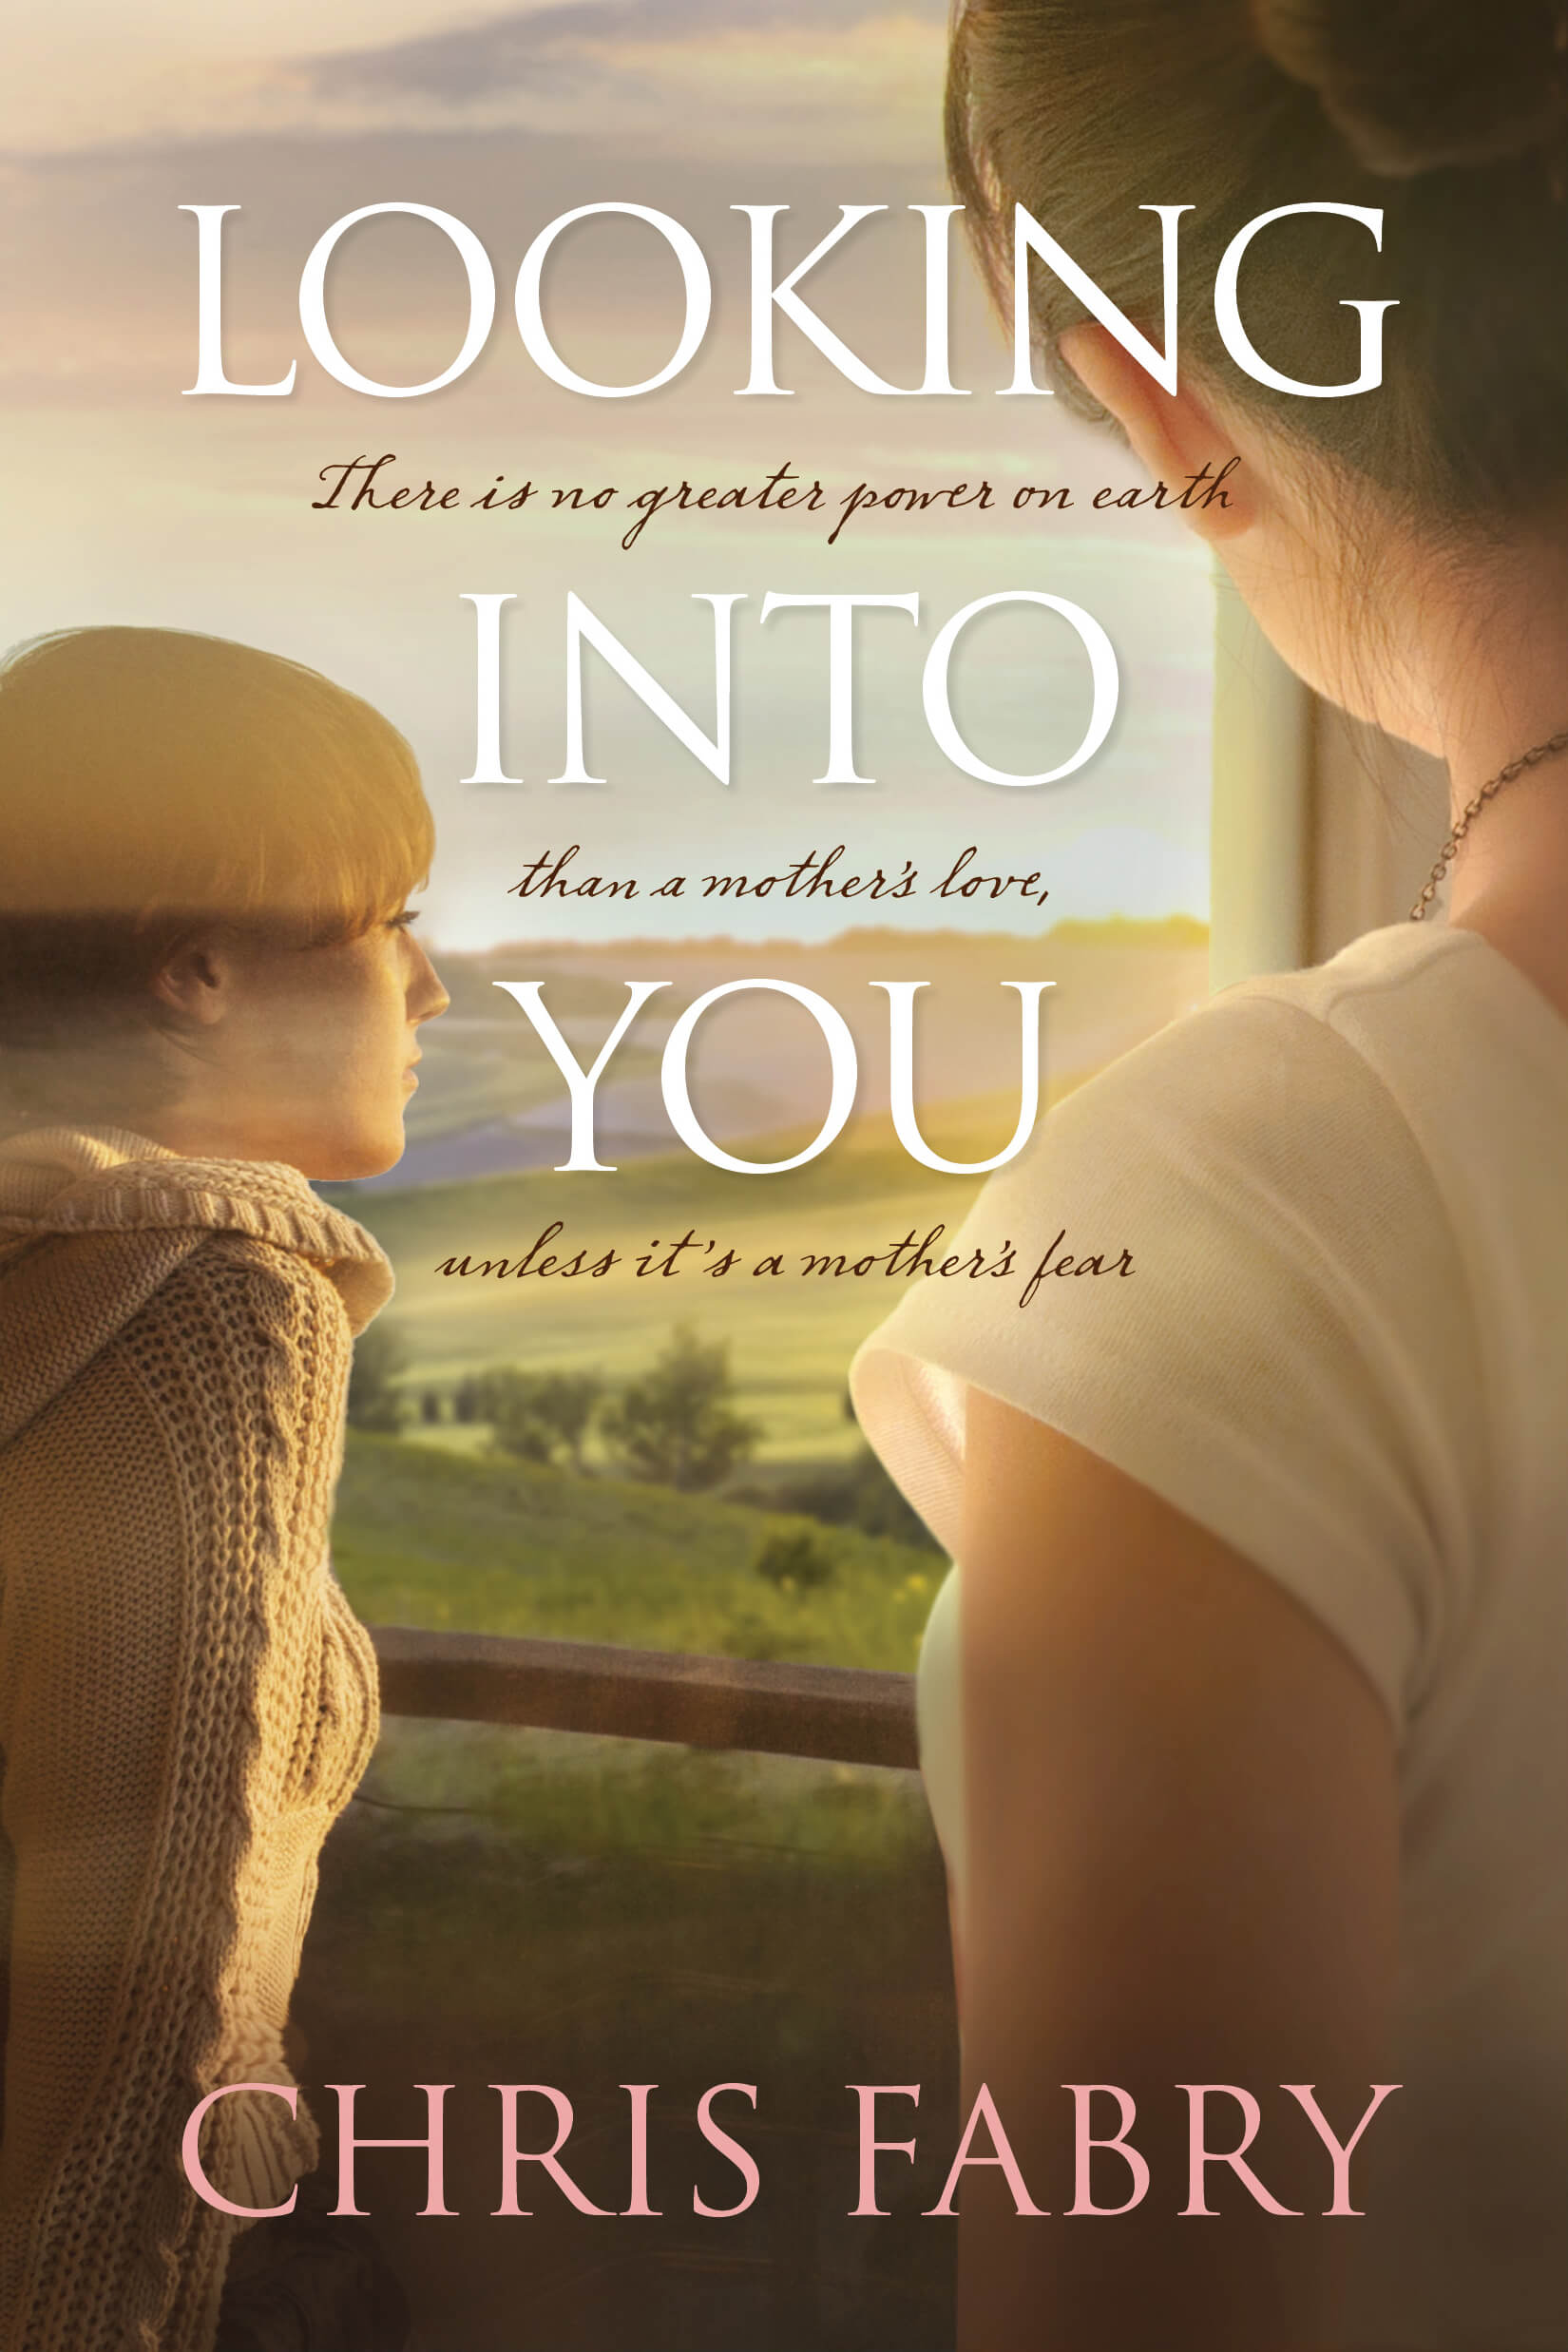 Book - Looking Into You